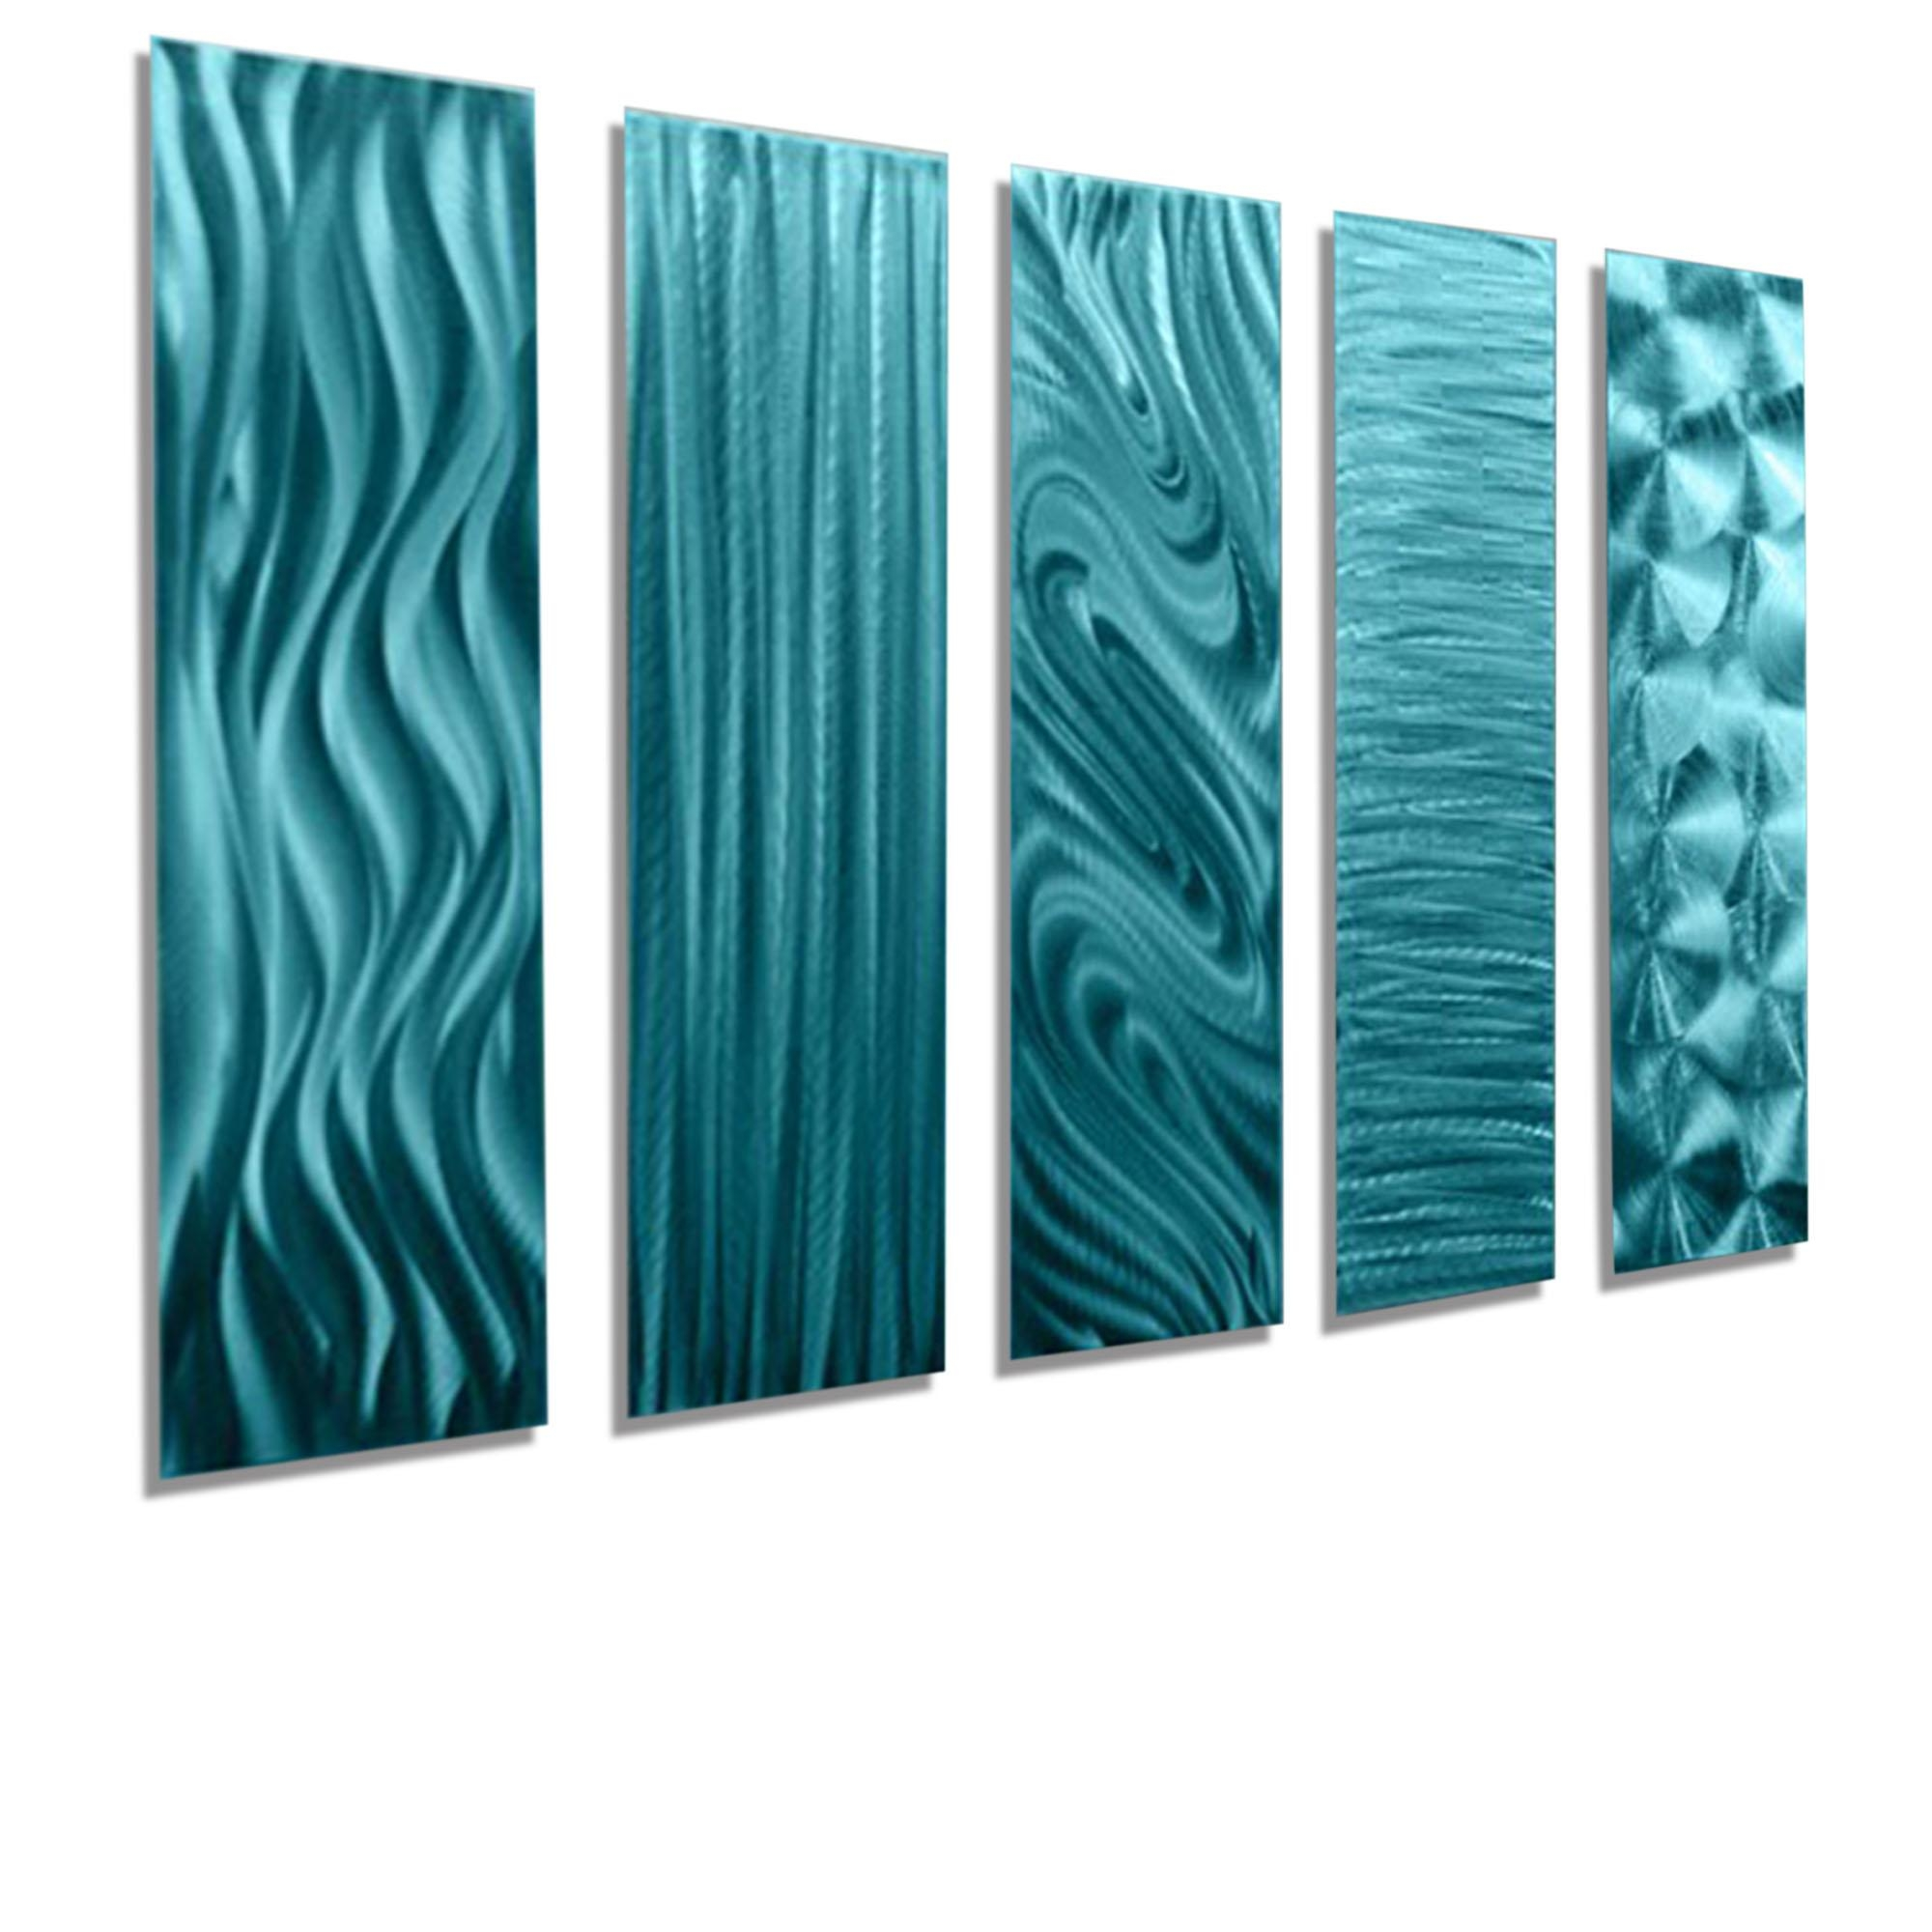 "5 Easy Pieces Aqua – Set Of Five 24"" X 6"" Metal Wall Art Accents Intended For Turquoise Metal Wall Art (View 19 of 20)"